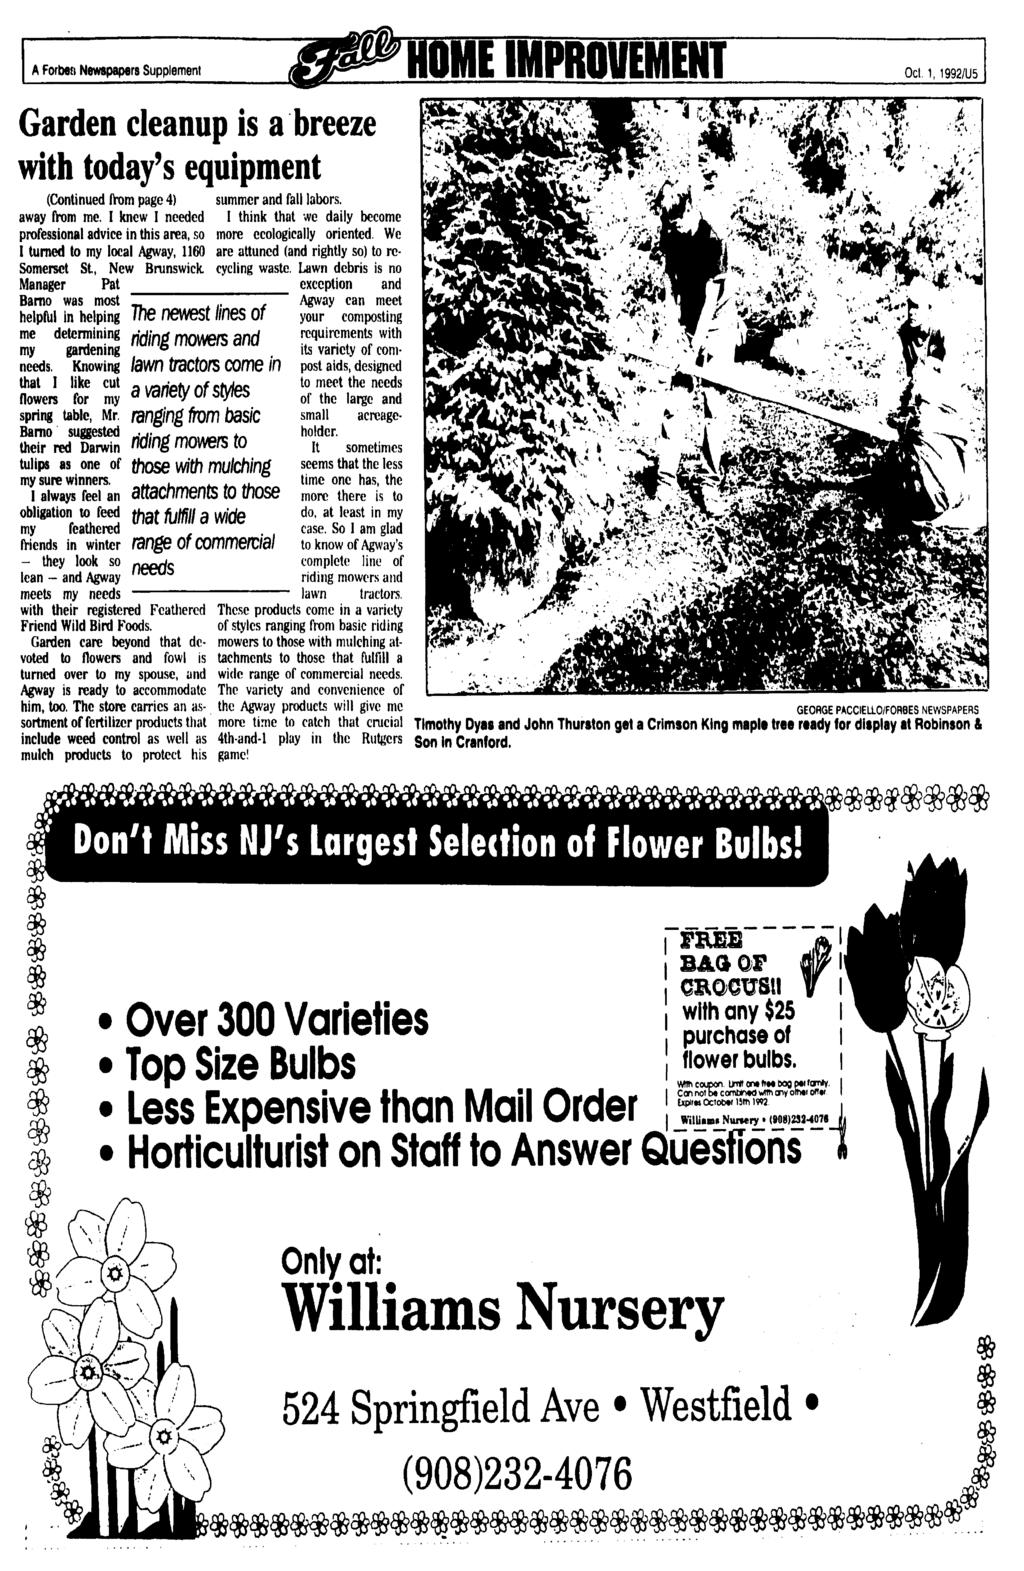 A Forben Newspapers Supplement E MPROVEMENT Oct. 1, 1992/115 Garden cleanup is a breeze with today's equipment (Continued from page 4) summer and fall labors, away from me.